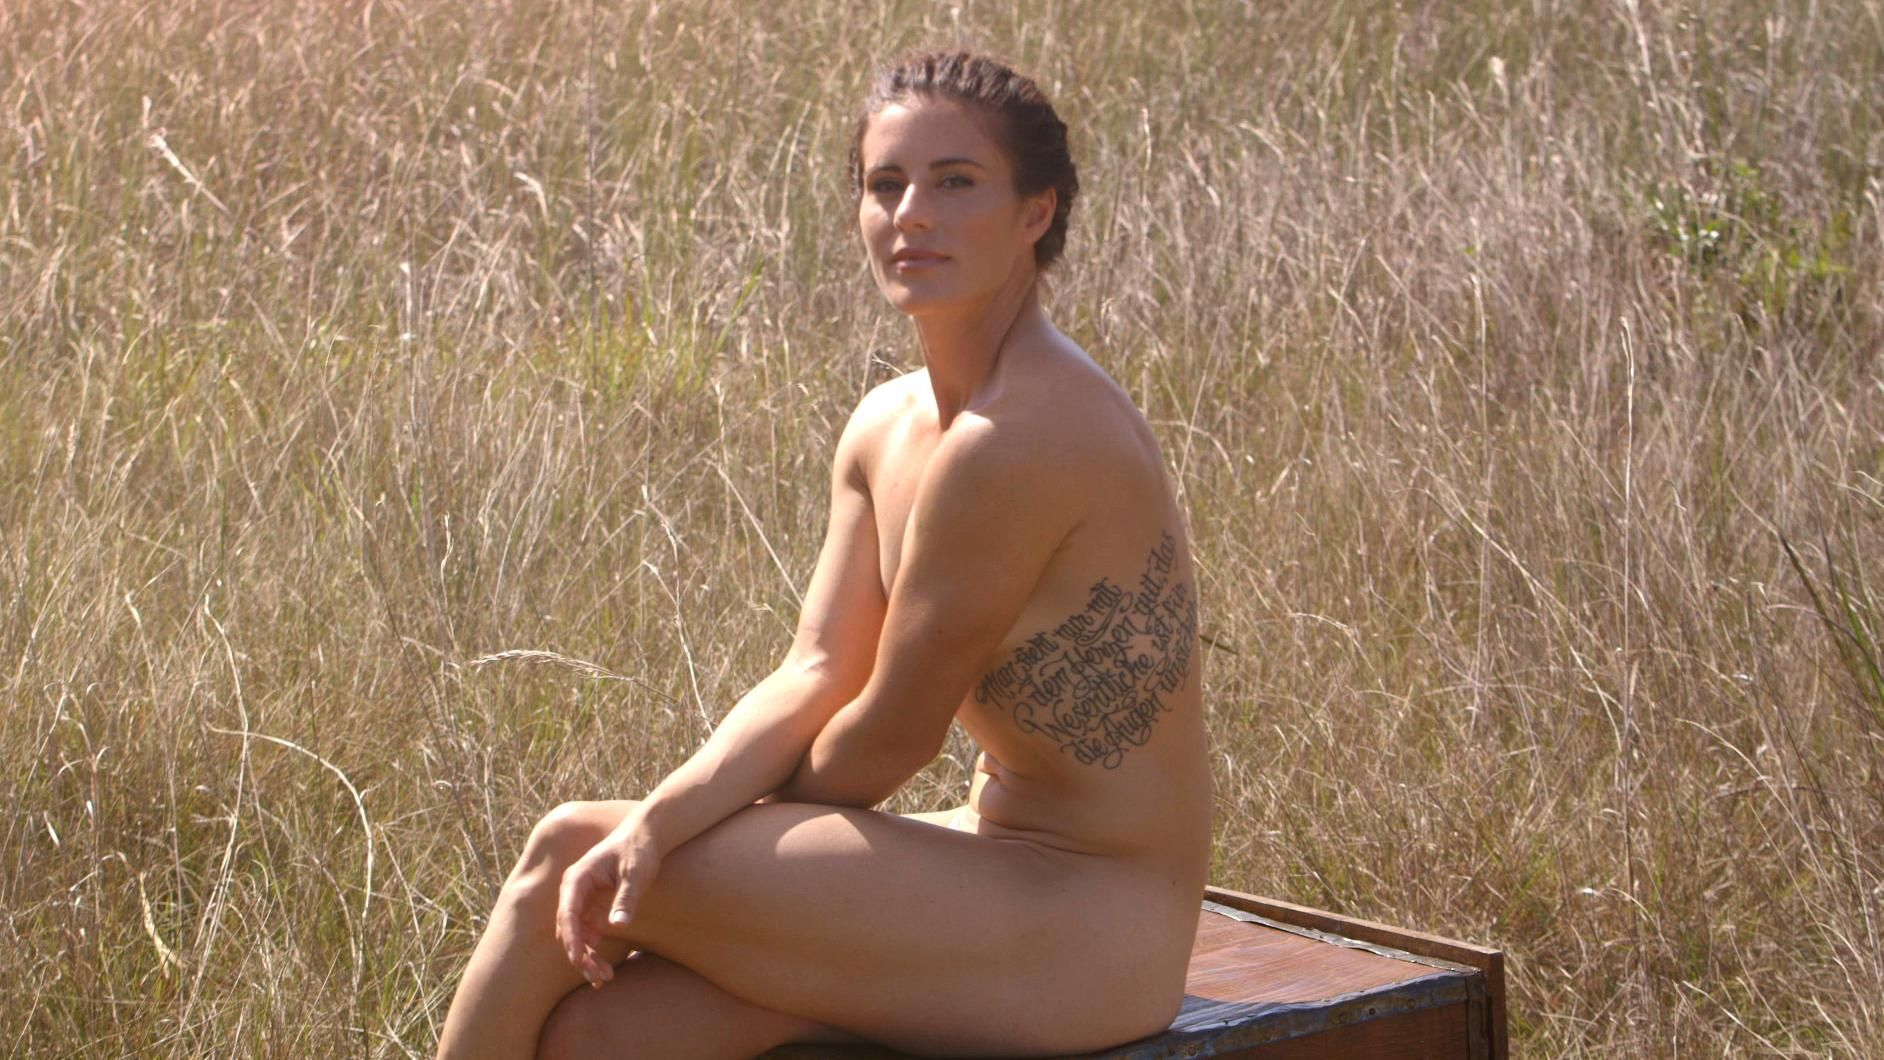 Aly Raisman Topless in SI Swimsuit Photoshoot - Punch Front